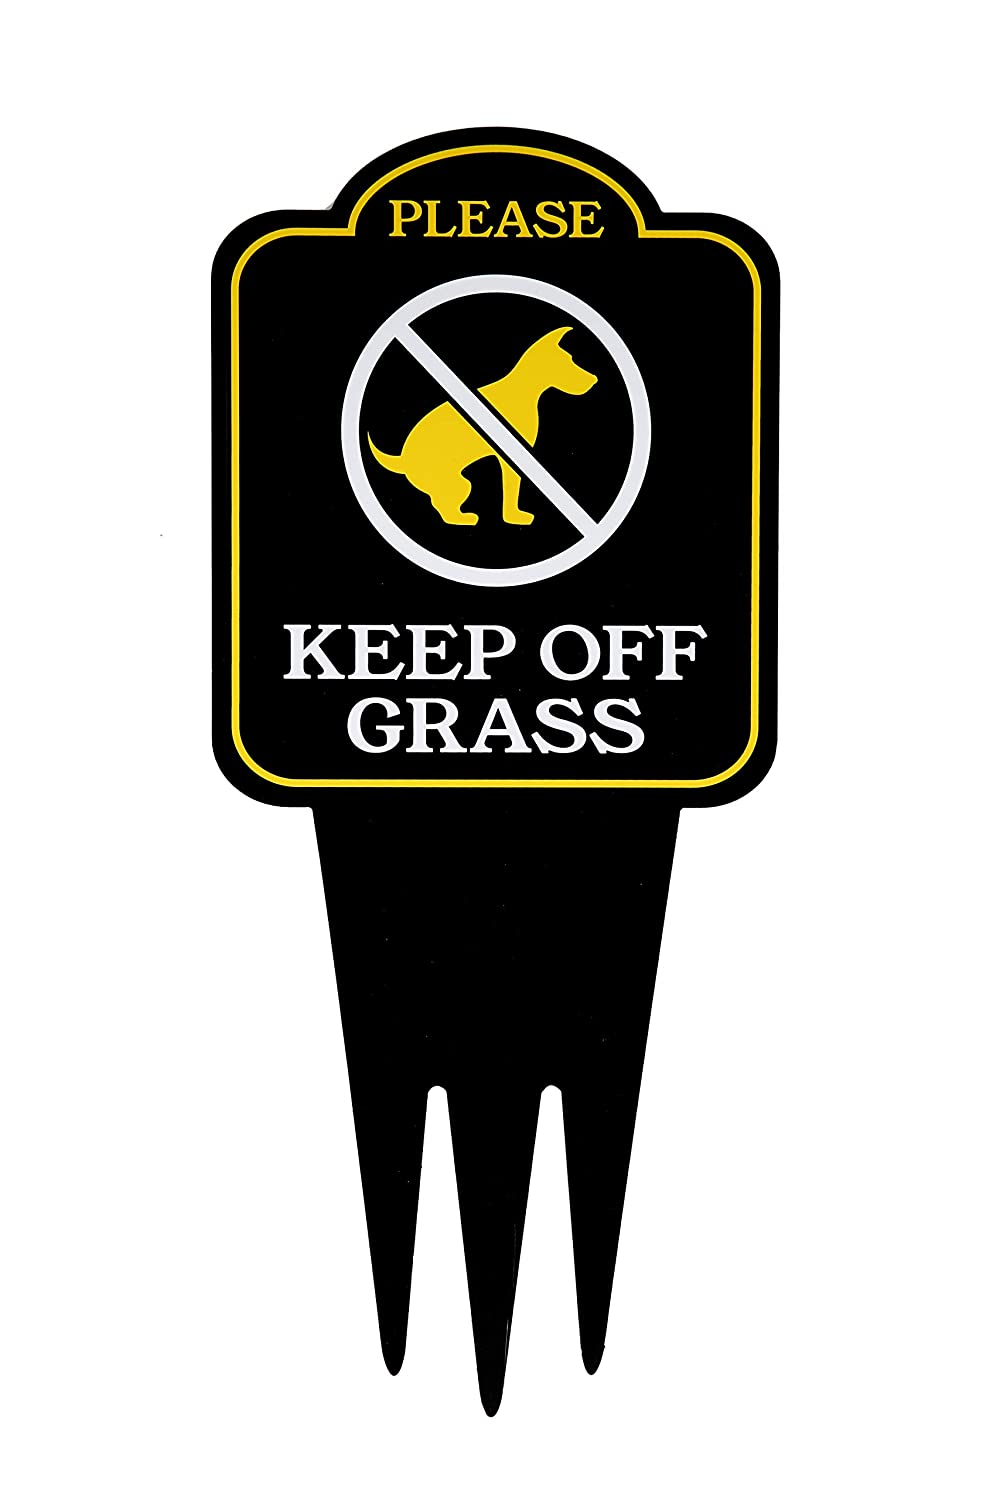 "Keep Off Grass Yard Sign With Stake | No Dogs, No Pets, No Peeing, No Pooping on Lawn Signs | Unique Triple Self Staking Design | Heavy Duty Dibond Aluminum | Larger 18"" Tall x 8"" Wide"